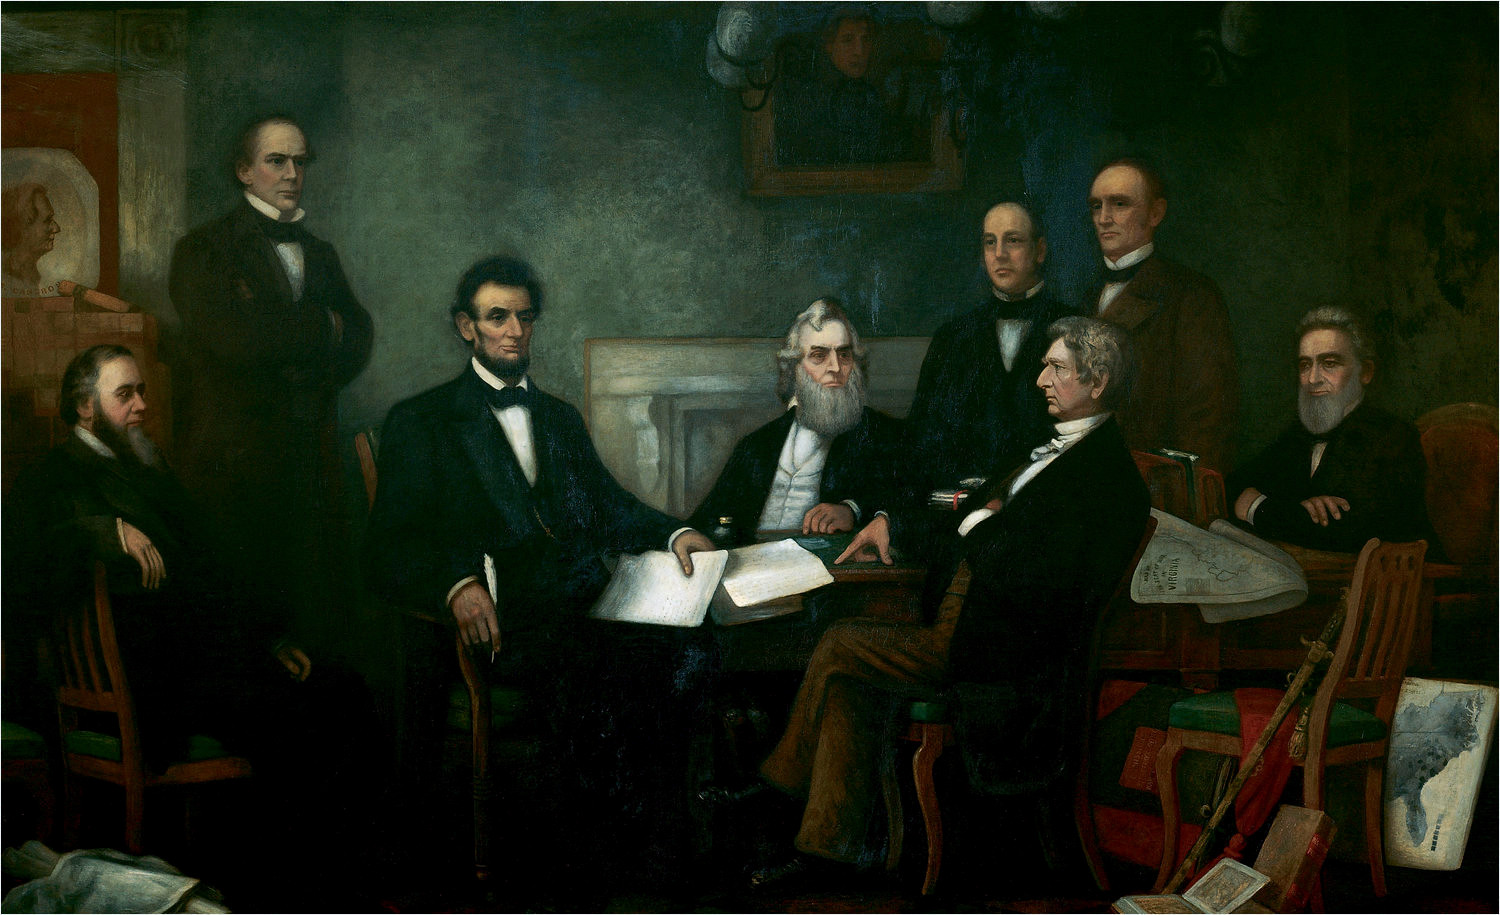 """""""First reading of the Emancipation Proclamation of President Lincoln,"""" by Francis Bicknell Carpenter [Public domain], via Wikimedia CommonsShown from left to right are: Edwin M. Stanton, secretary of war (seated); Salmon P. Chase, secretary of the treasury (standing); Abraham Lincoln; Gideon Welles, secretary of the navy (seated); Caleb Blood Smith, secretary of the interior (standing); William H. Seward, secretary of state (seated); Montgomery Blair, postmaster general (standing); Edward Bates, attorney general (seated)."""